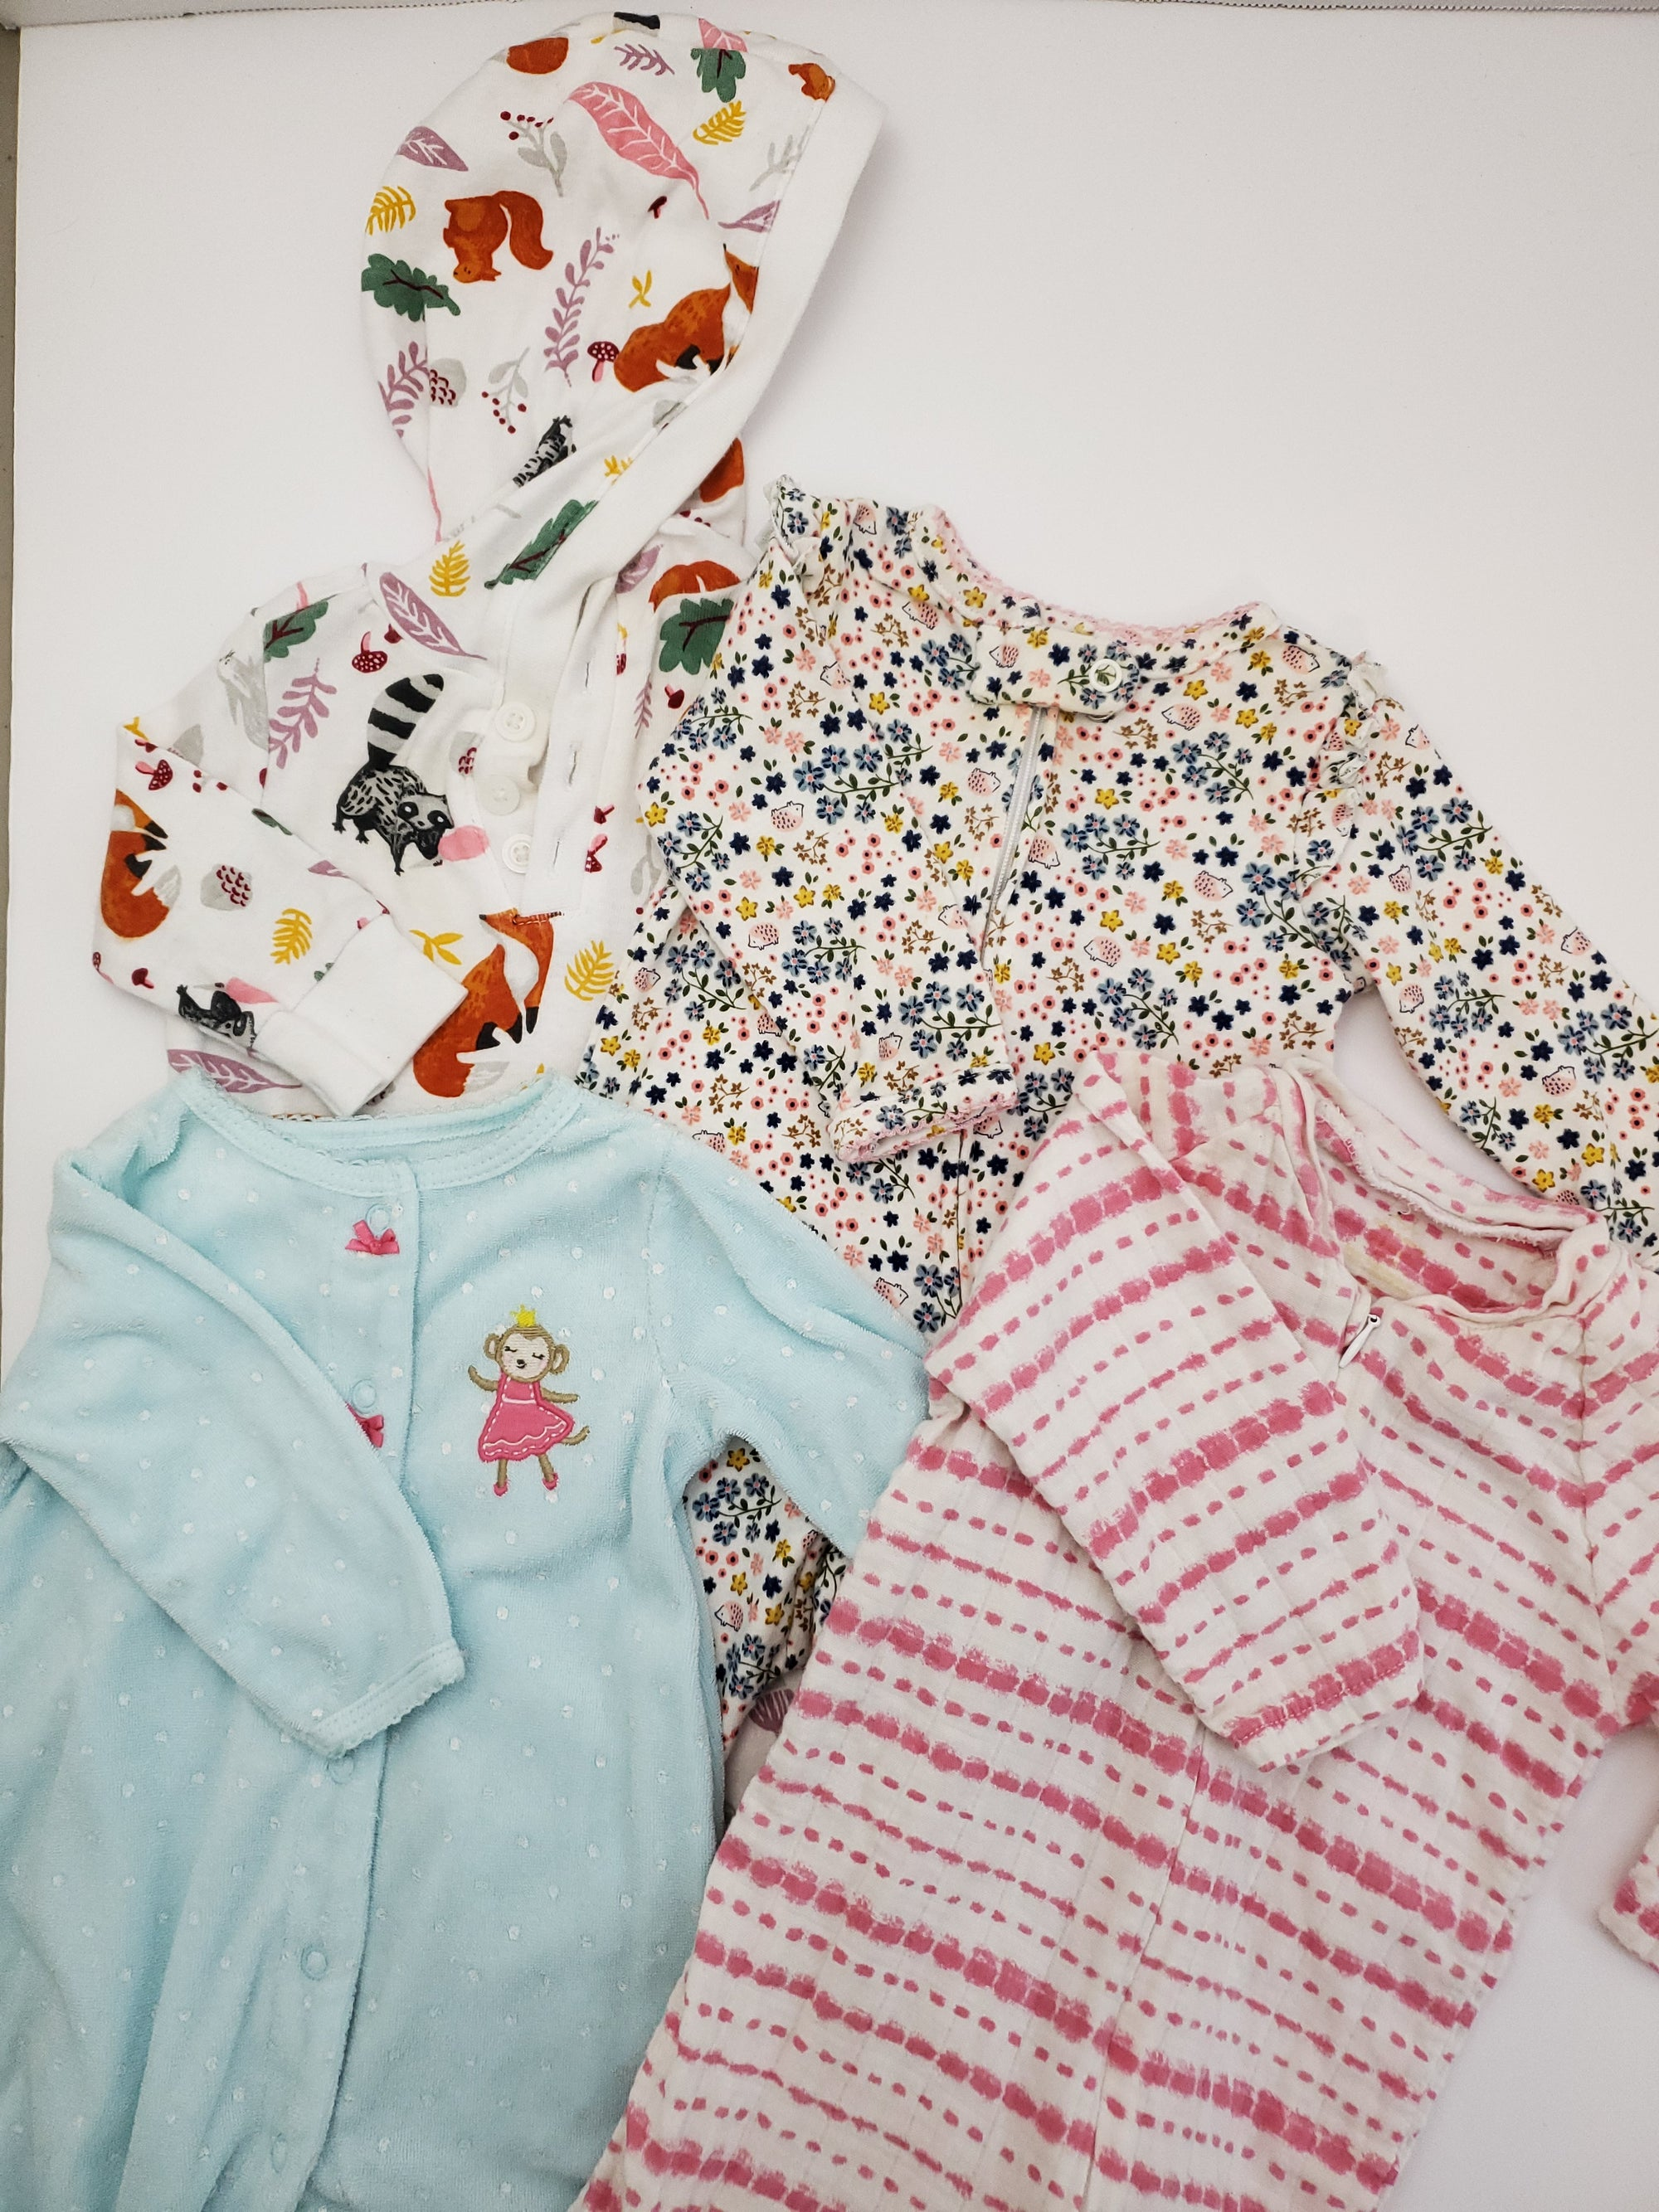 Resale 0-3 m / 3 m Carter's Footed Pajamas & Romper 4pc Set - Floral / Dot / Striped / Animals